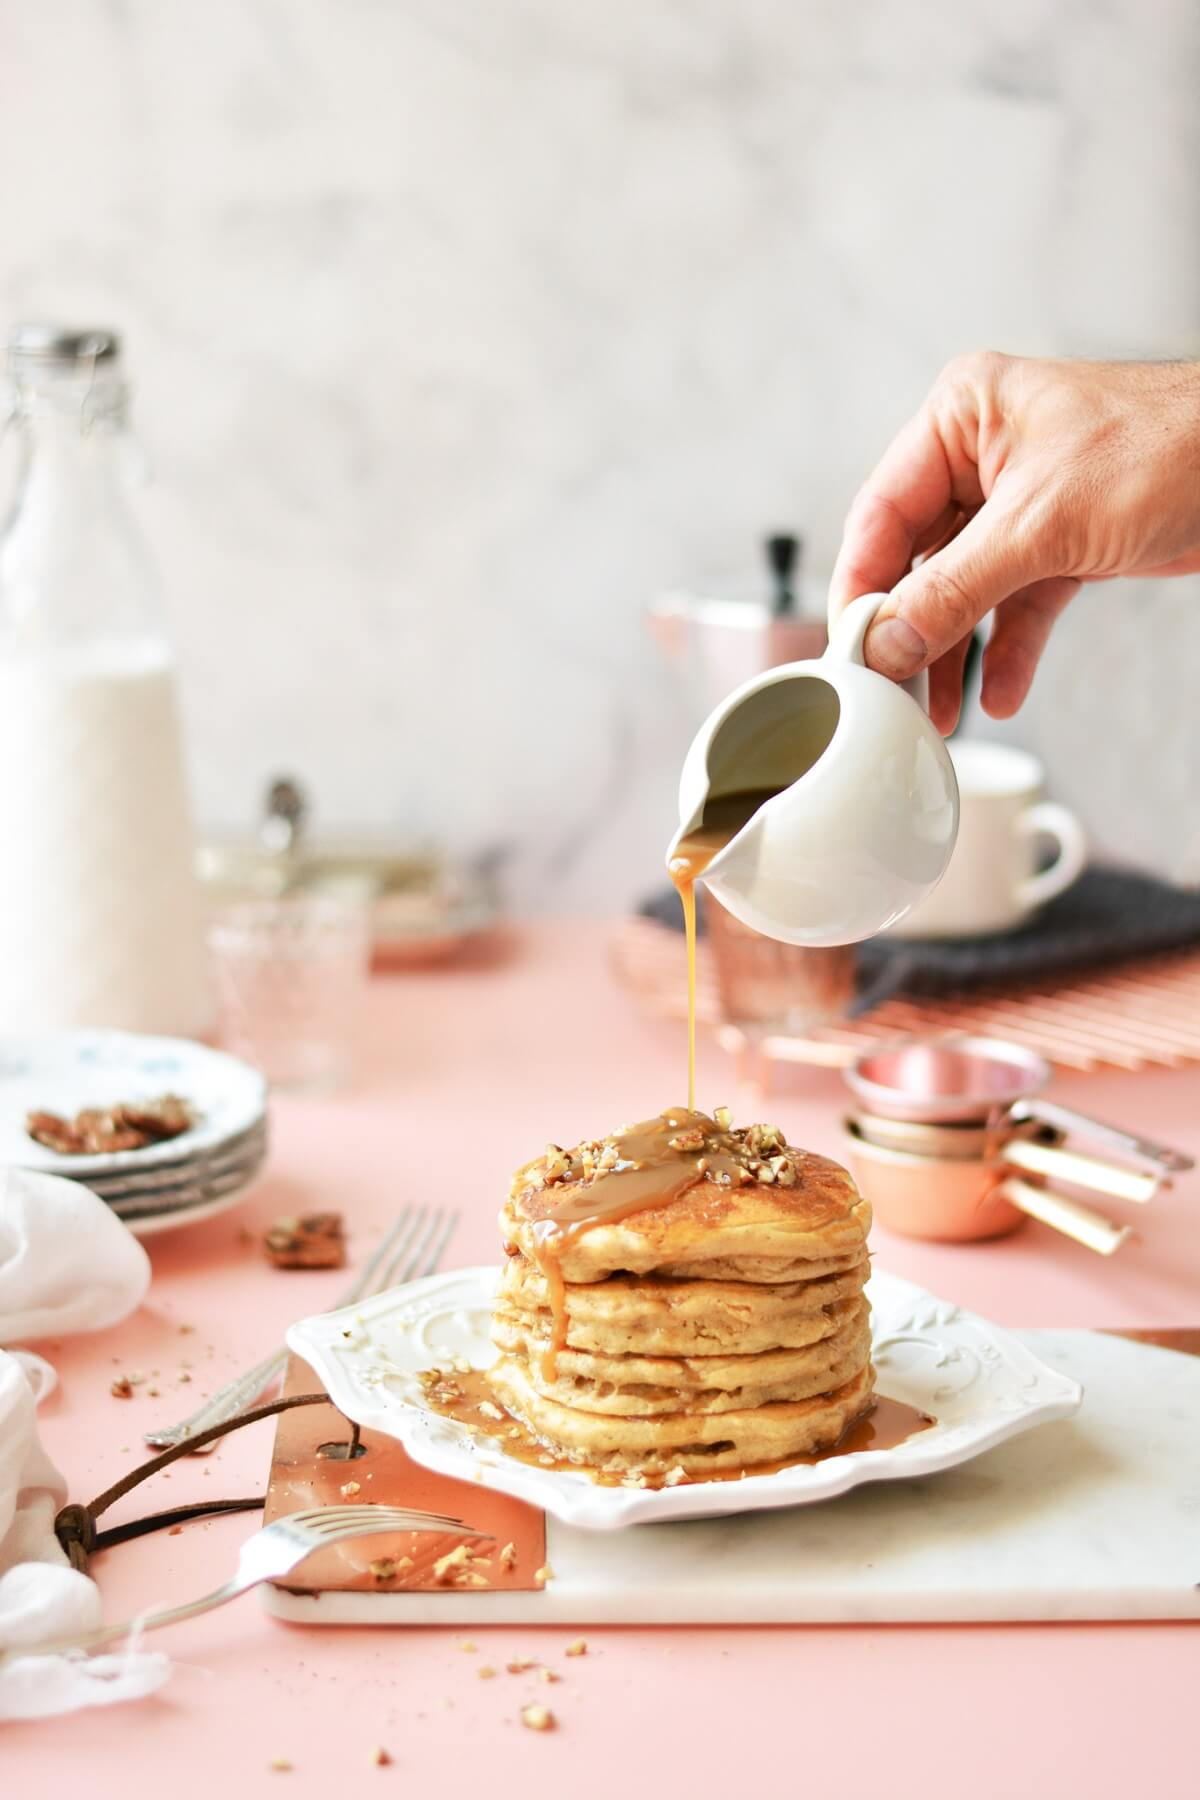 A stack of butter pecan pancakes on a white plate, with a pitcher of toffee sauce being poured onto the pancakes, all surrounded by plates and coffee cups.